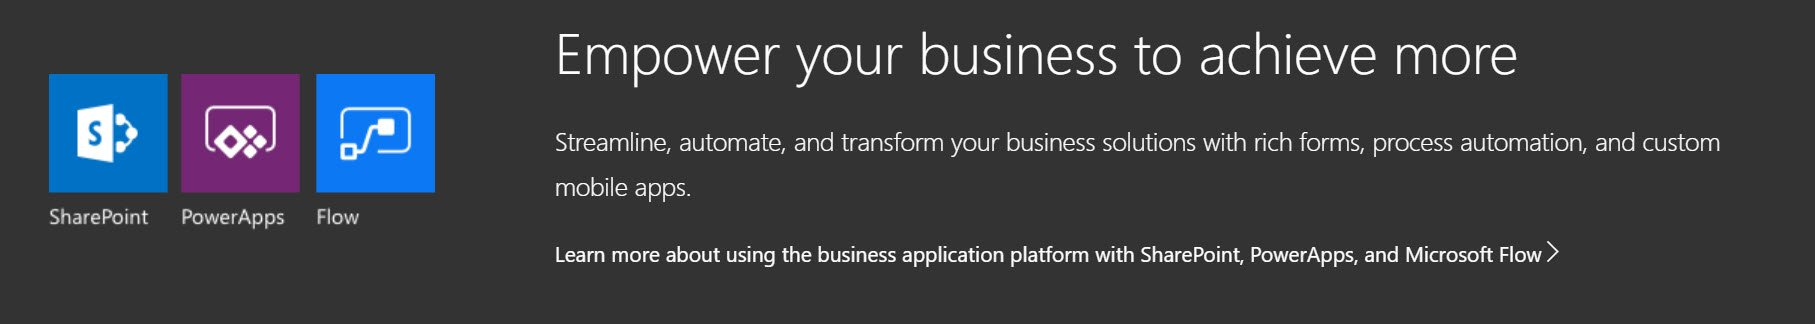 PowerApps, Flow, Sharepoint